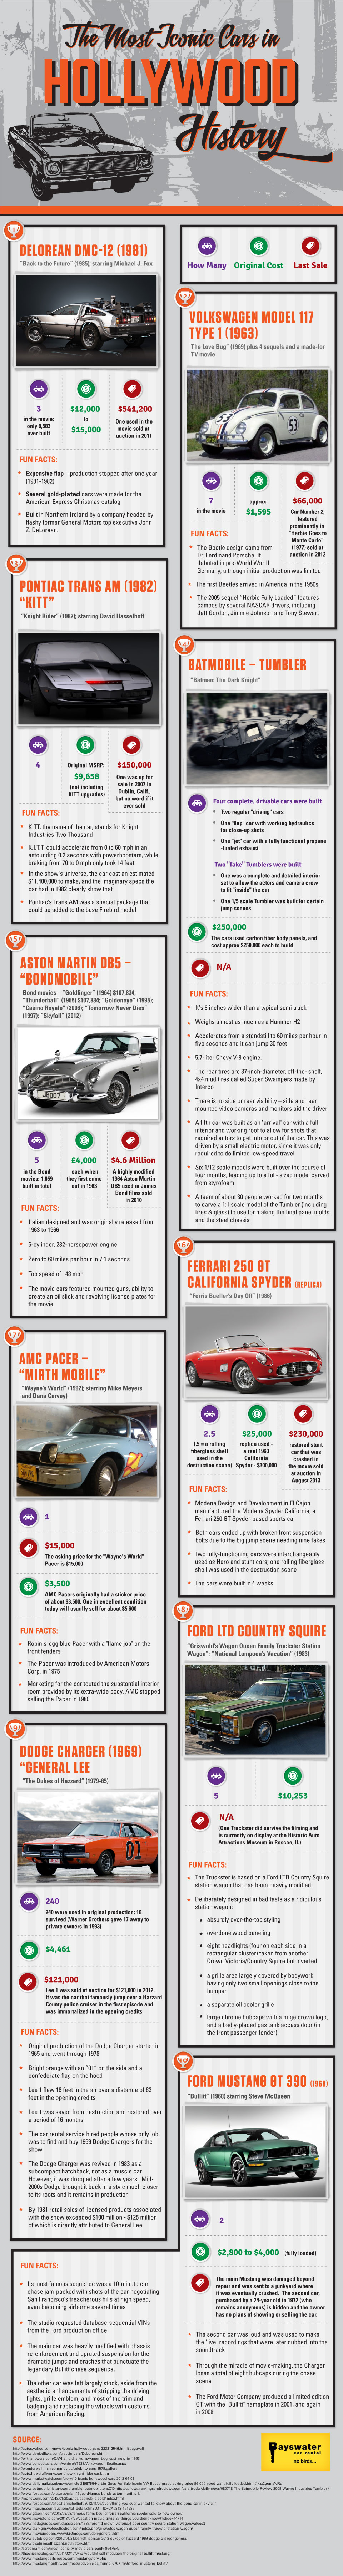 The  Most Iconic Cars in Hollywood History